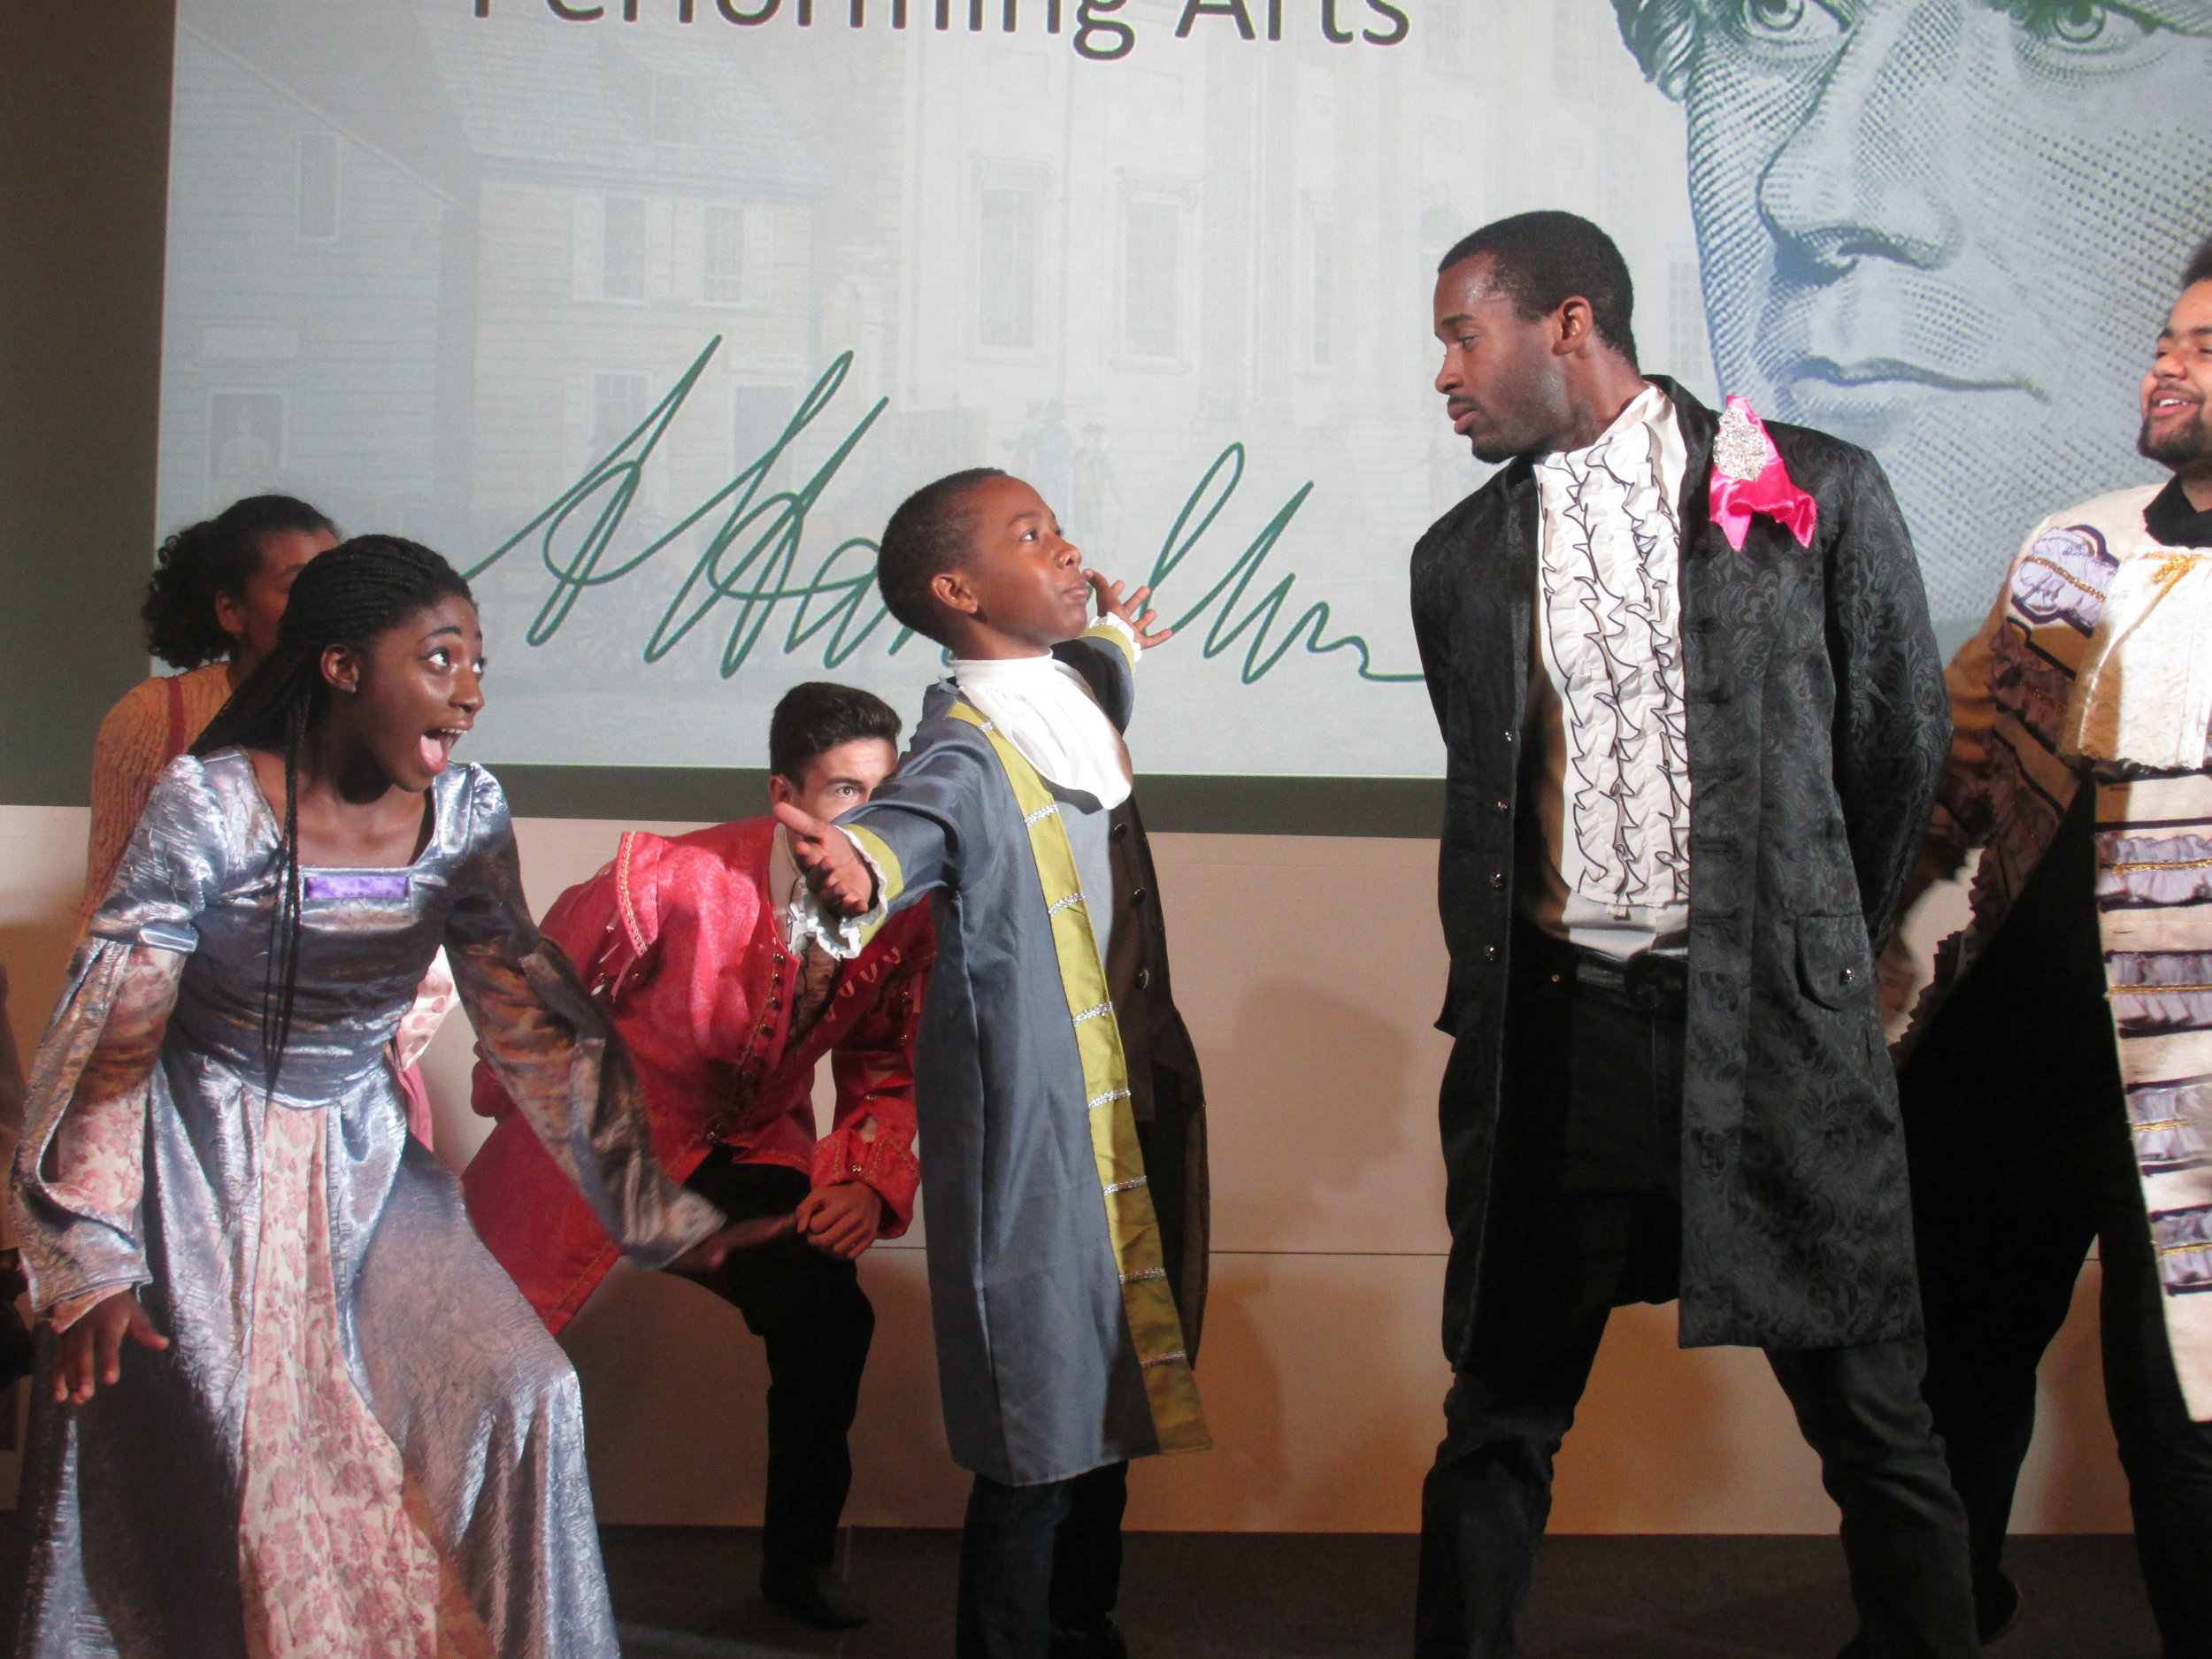 "Lundstrum Students Perform at the Minneapolis Federal Reserve - In September, our students were honored to perform an adaptation of the opening number from ""Hamilton"" to open an exhibit at the Federal Reserve Bank about the life of Alexander Hamilton. They rocked it!"